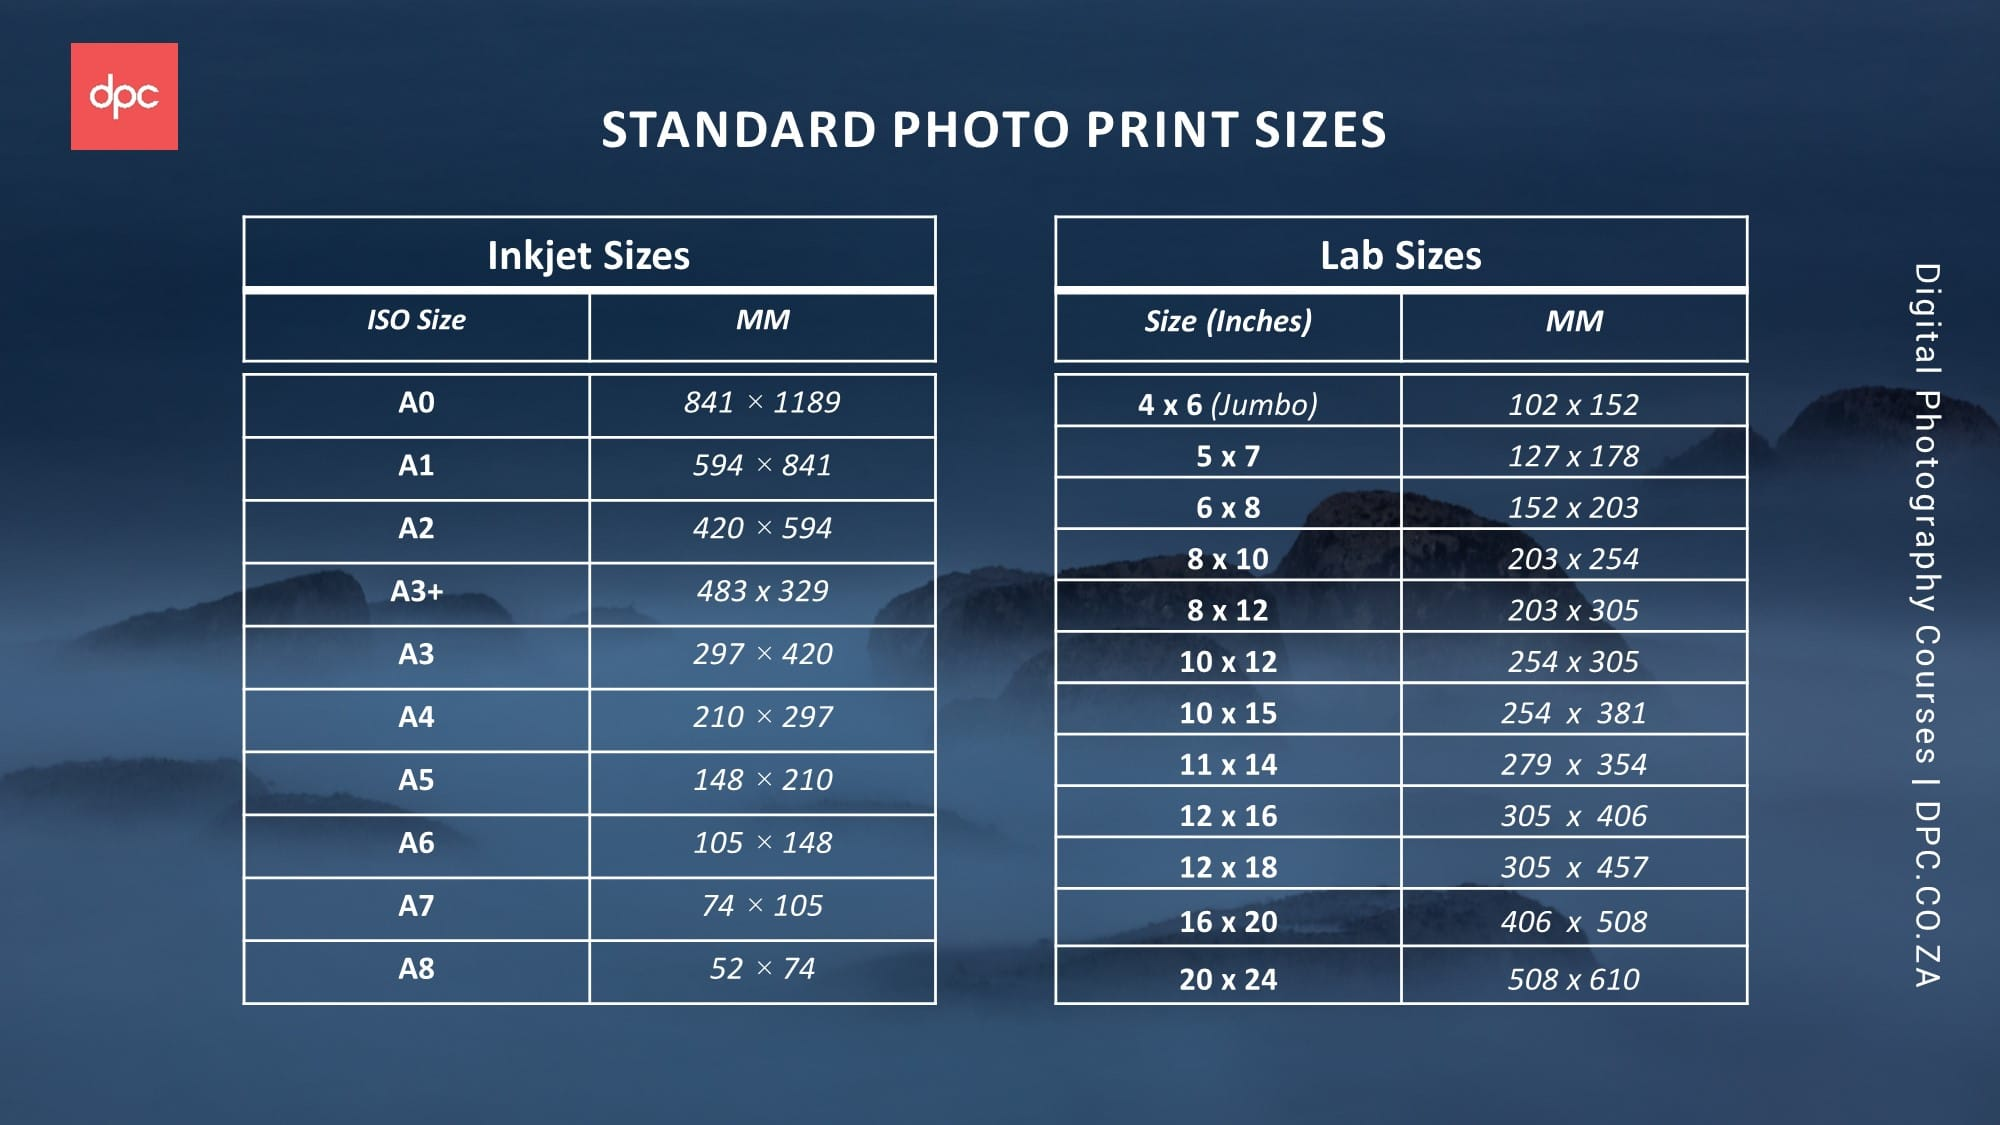 Standard Print Sizes | DPC | Digital Photography Courses - photo#11